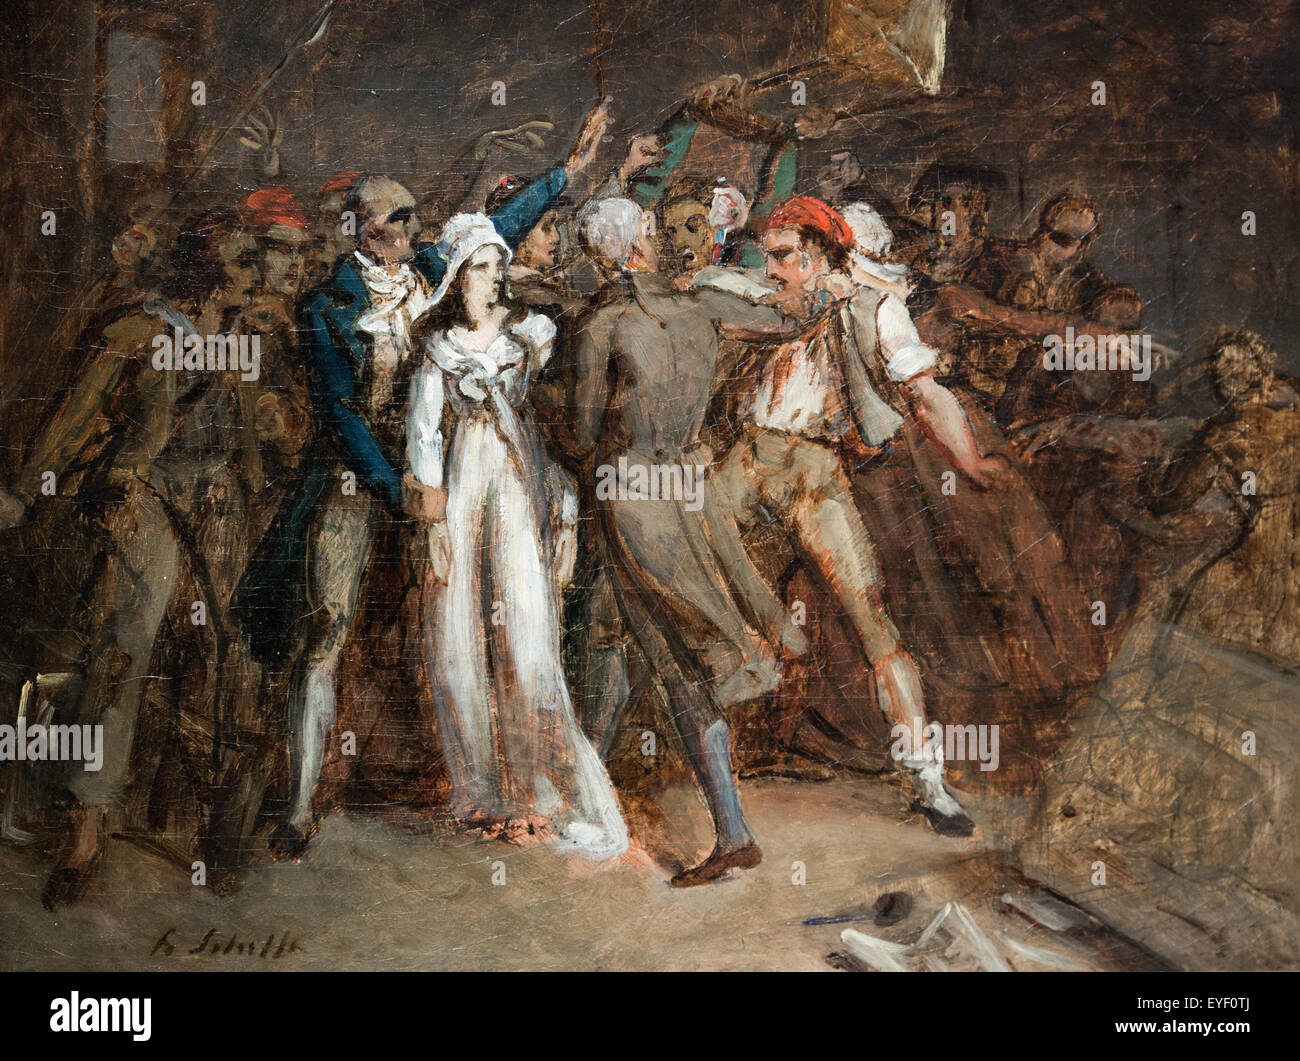 The arrest of Charlotte Corday (1768-1793) 07/12/2013 - 19th century Collection - Stock Image